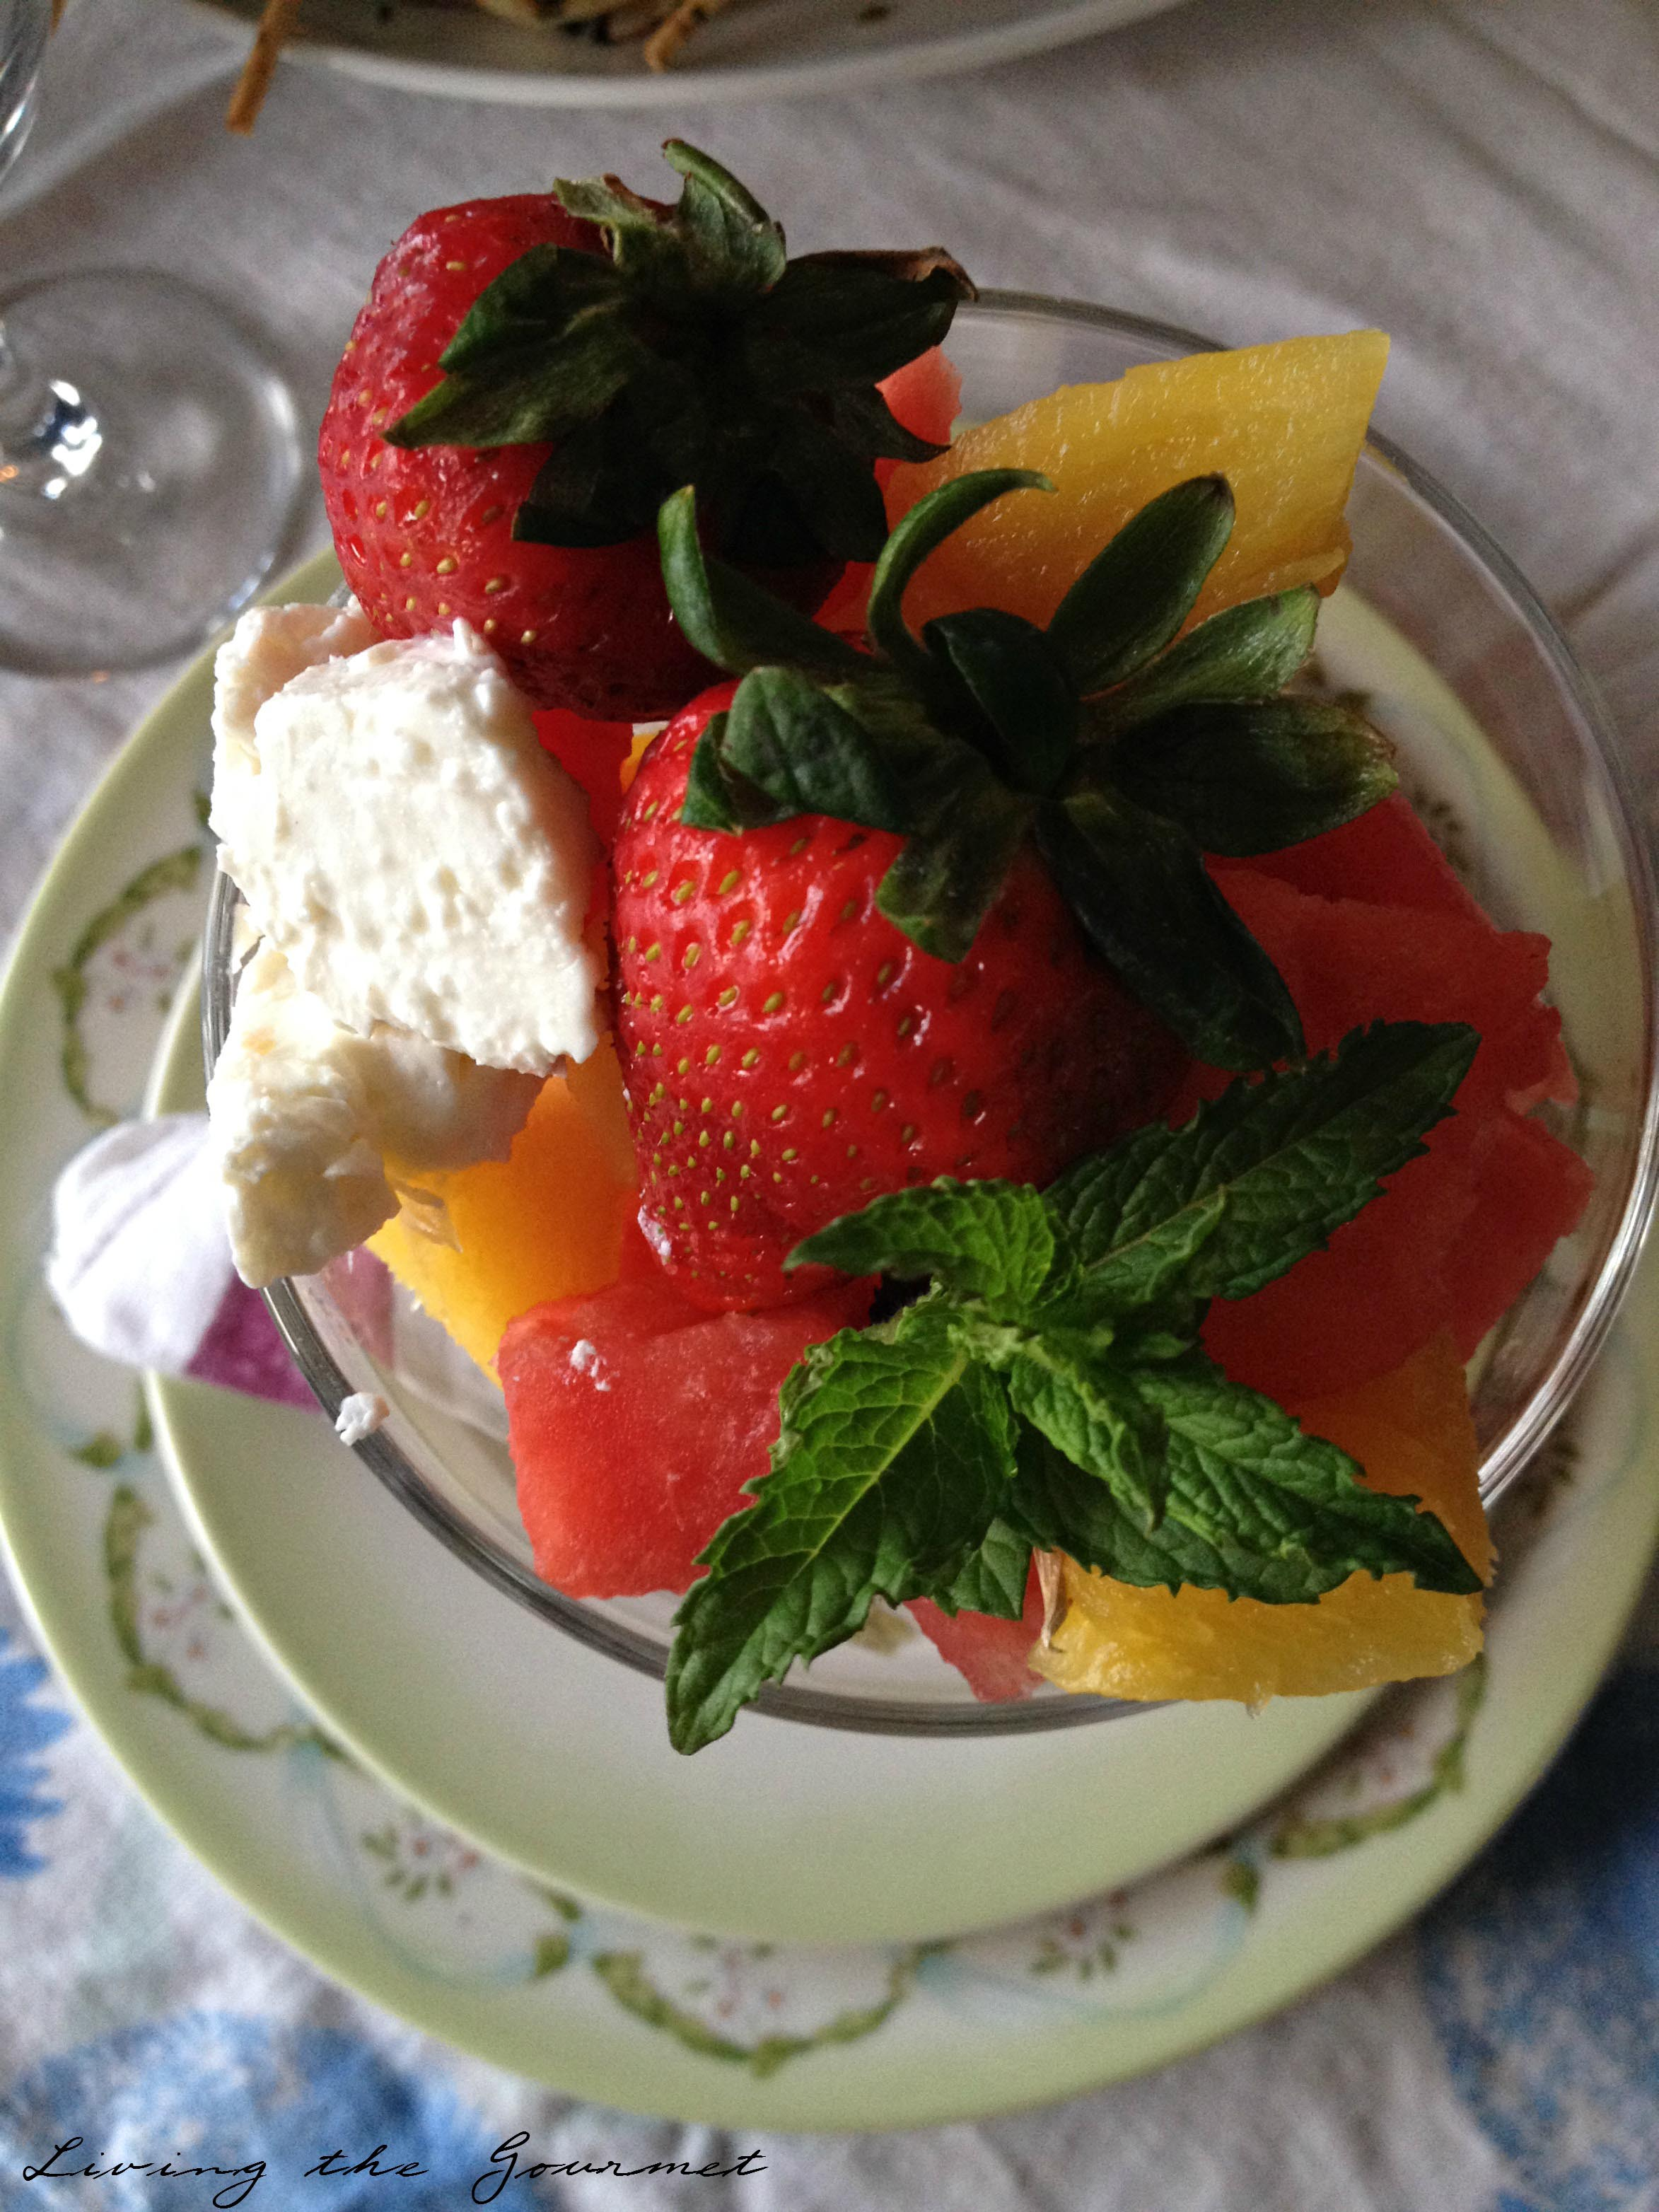 Living the Gourmet: Fruit Salad  #SiWhatsNext #CG